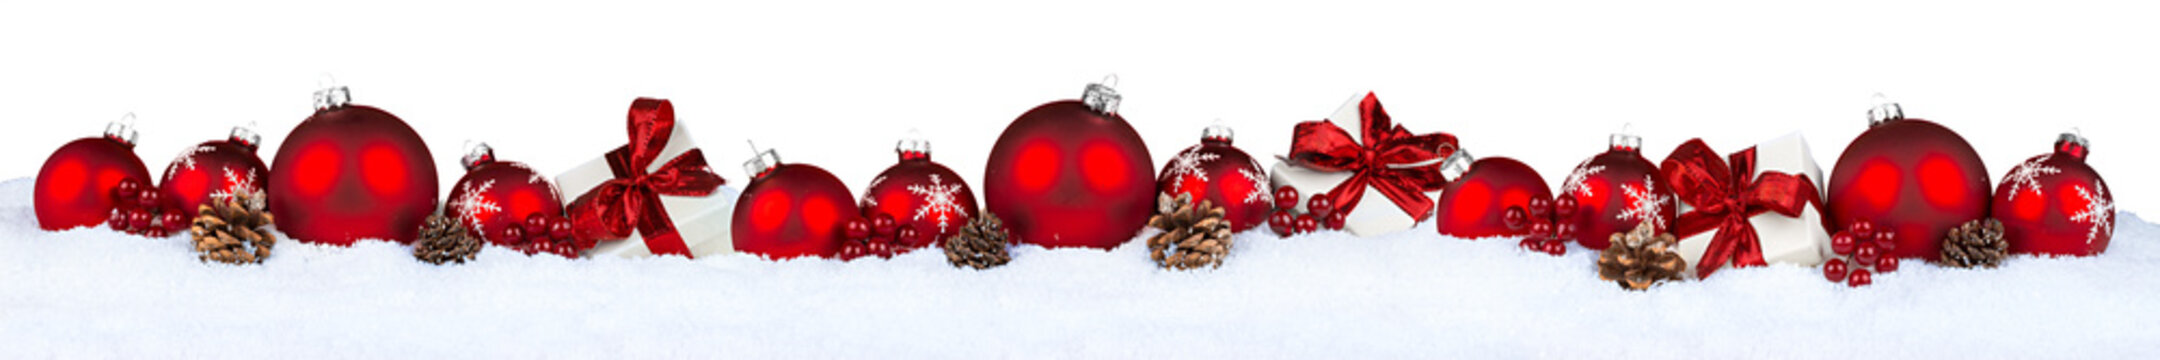 row of red christmas baubles balls in snow isolated on white background